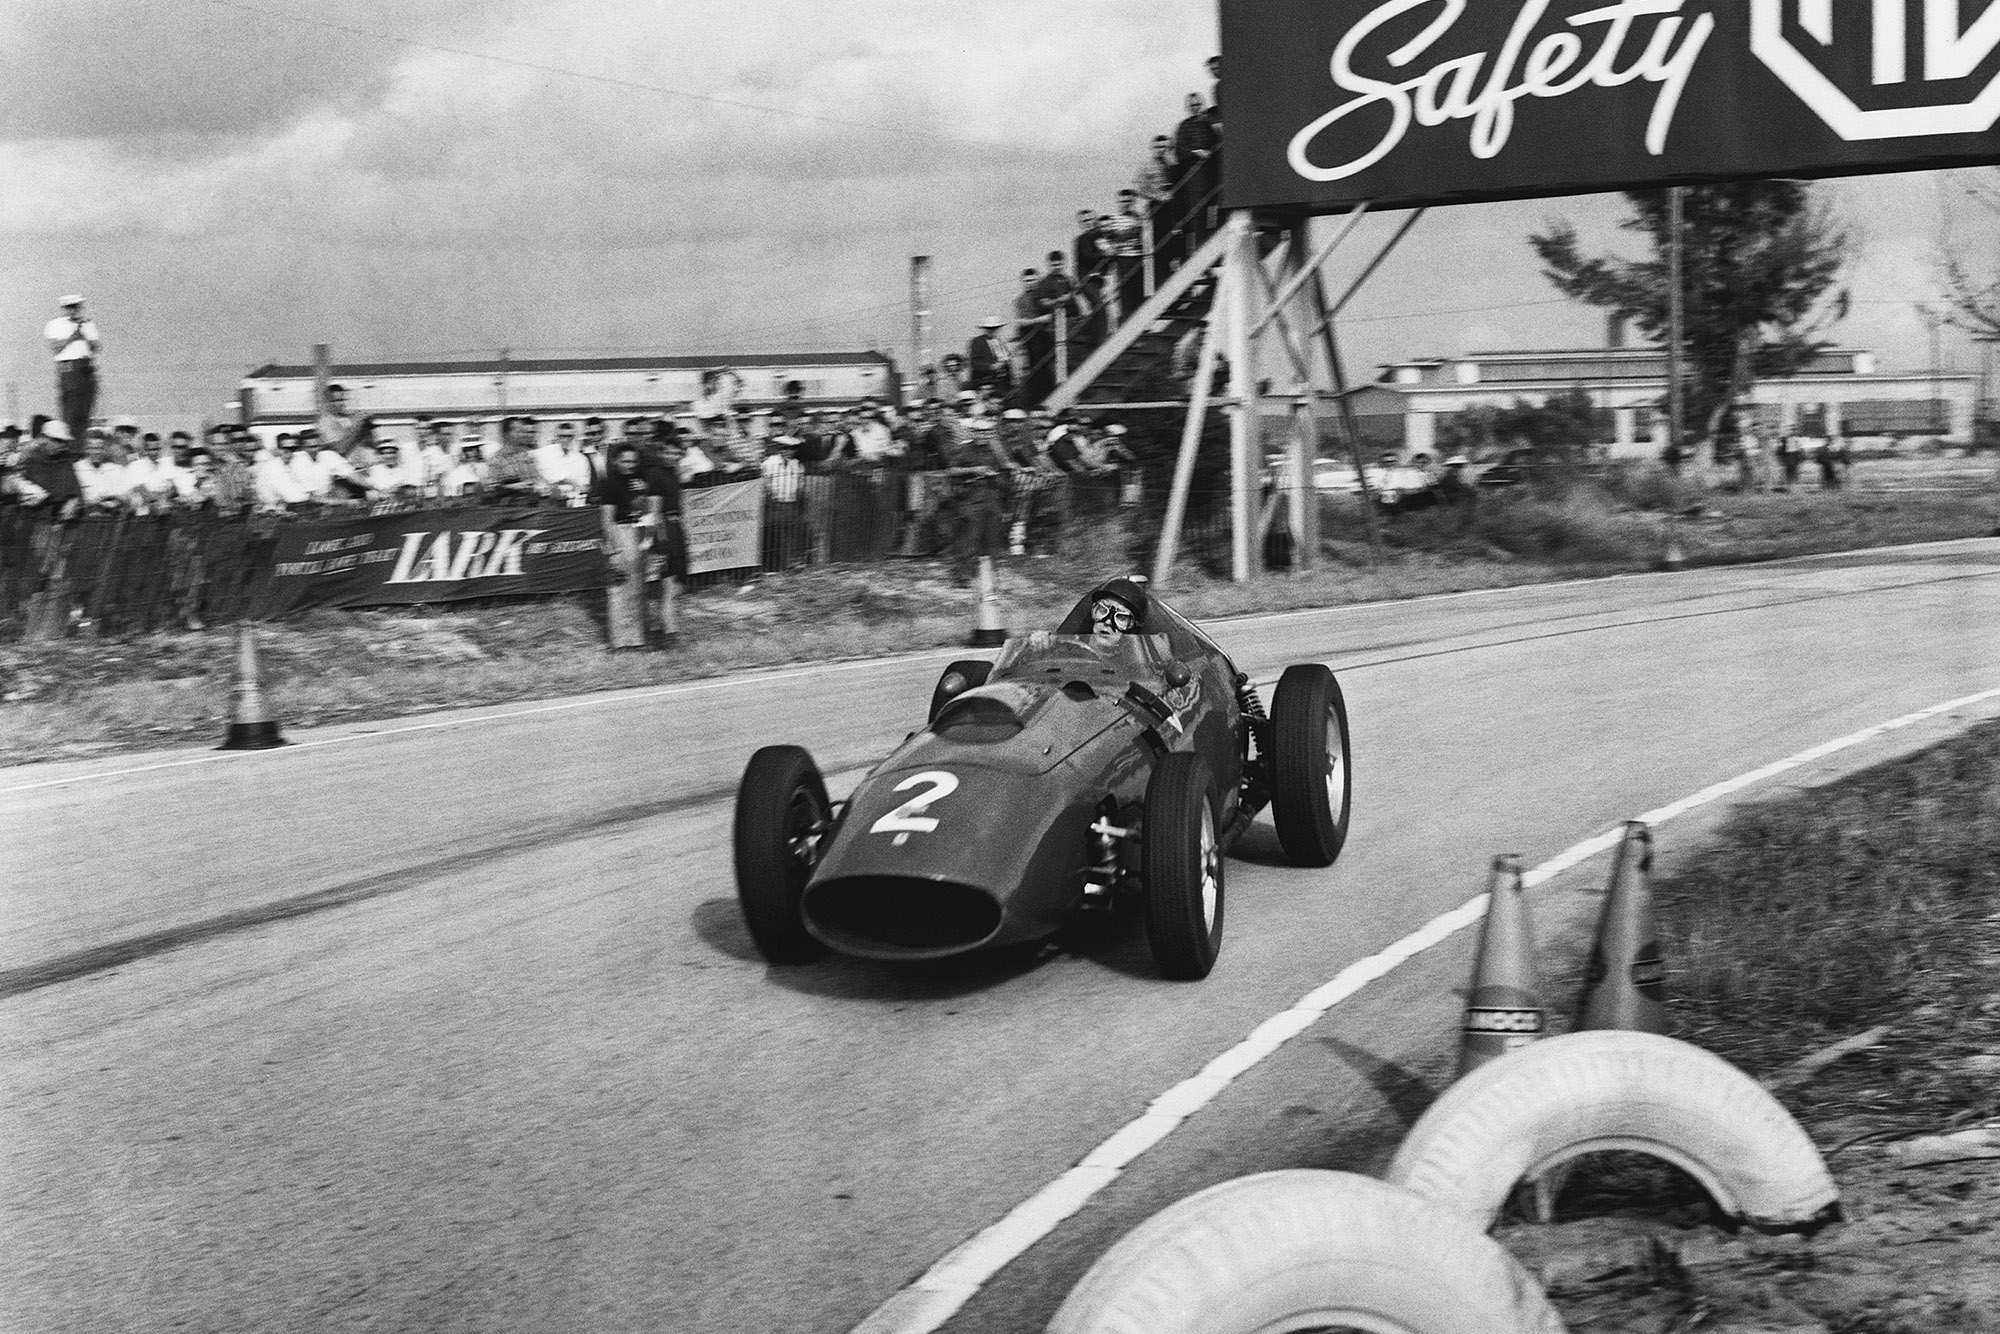 Tony Brooks in a Ferrari Dino 246 during the 1959 United States Grand Prix at Sebring